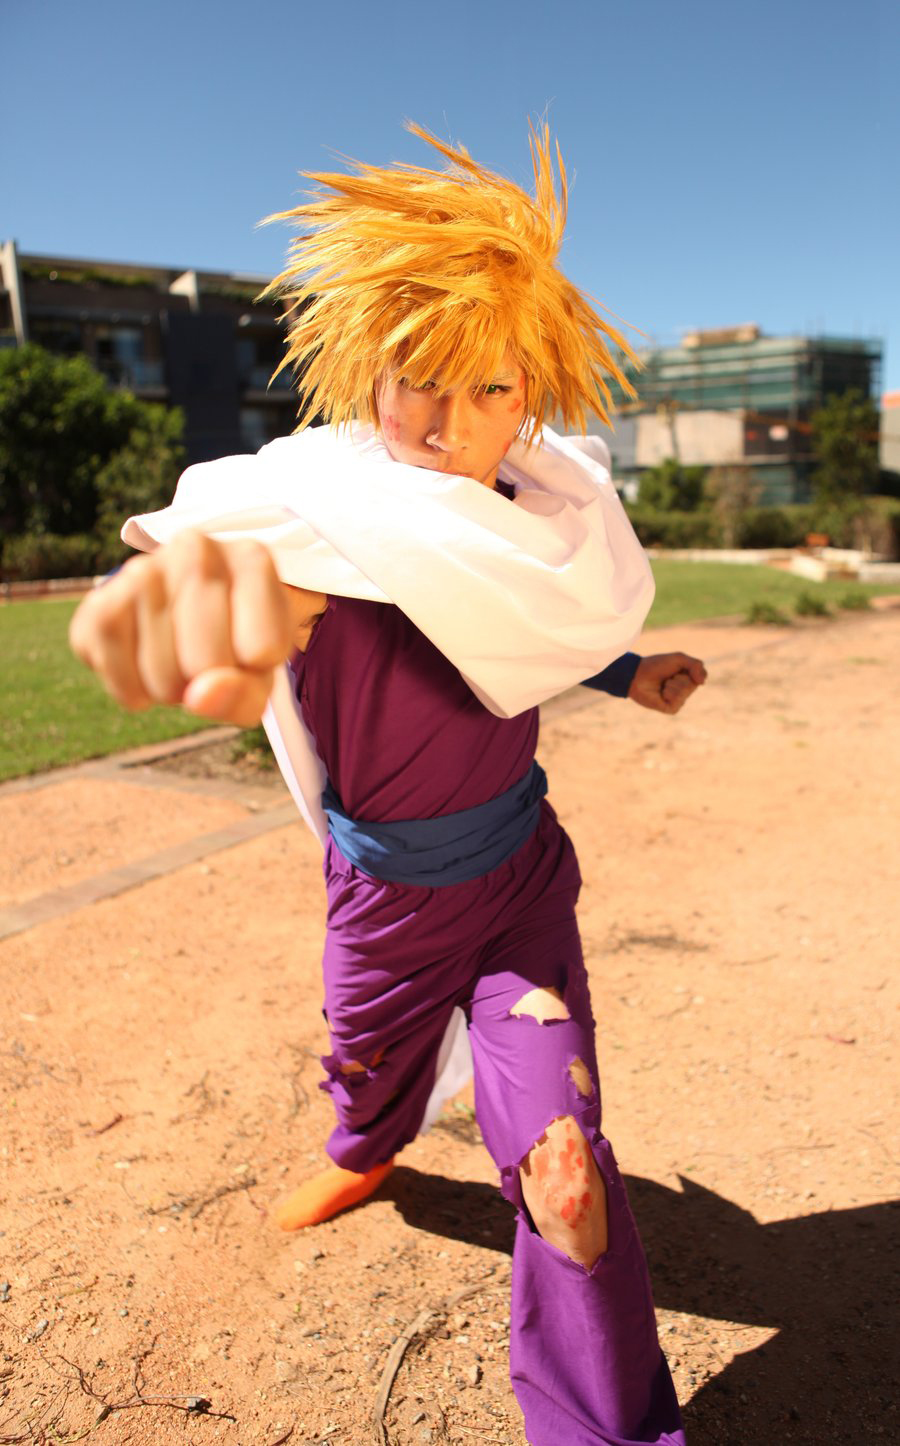 Dragonball Z: Gohan In Battle by RaikouCos